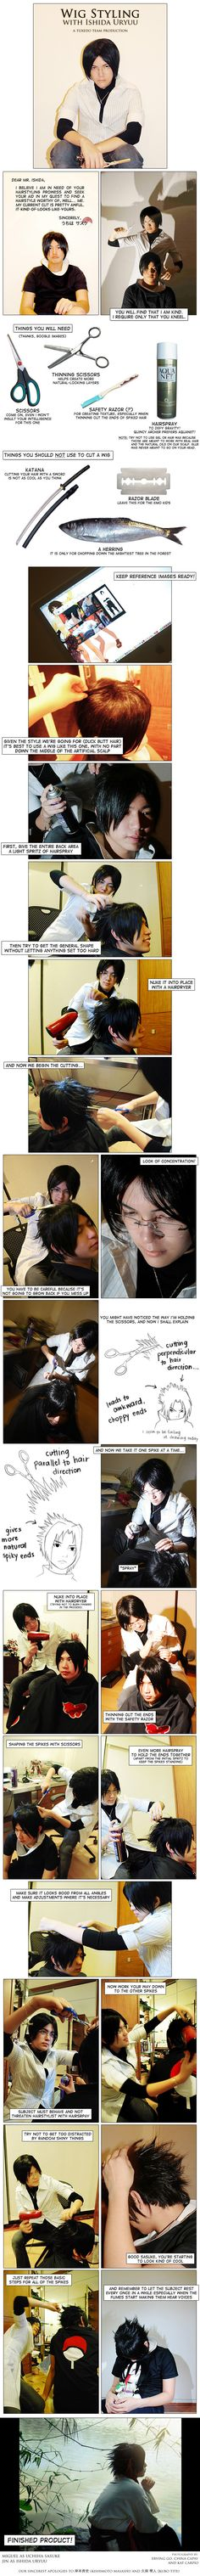 Wig Styling with Ishida Uryuu by *behindinfinity on deviantART Excellent tutorial on  creating spikes.